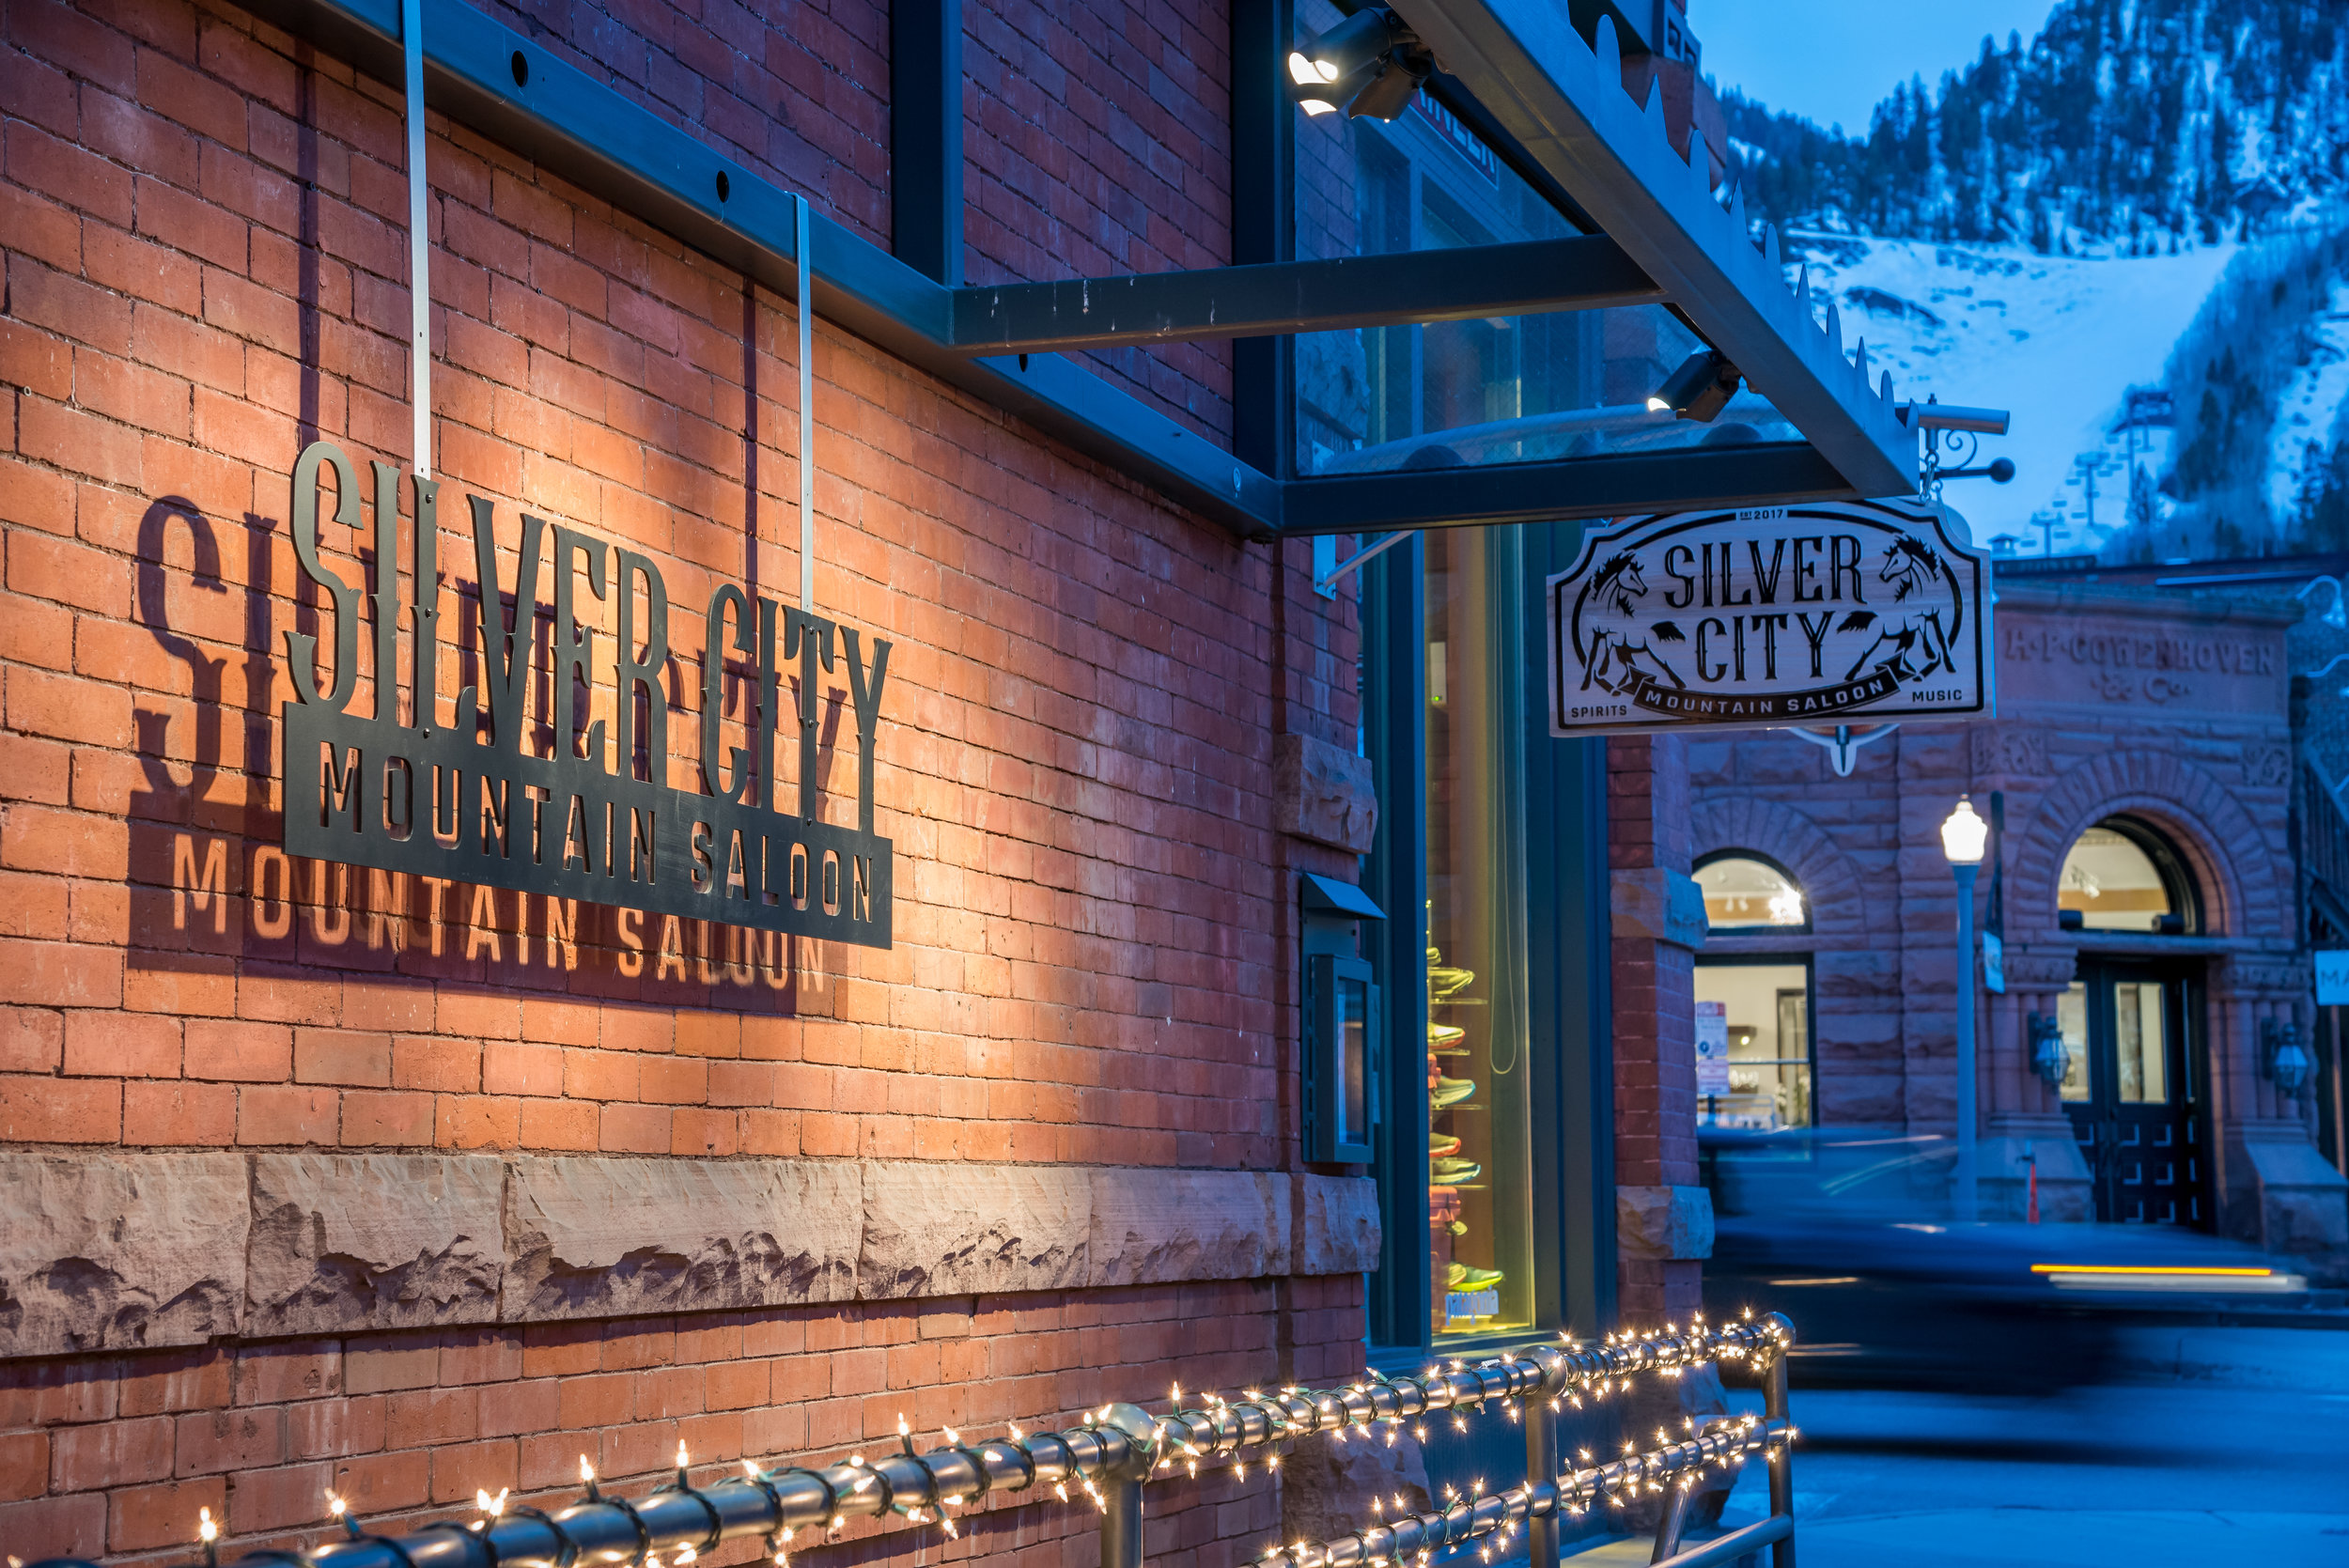 Silver City is located in Aspen's historic Elks Building, constructed in 1891 during the mining boom.